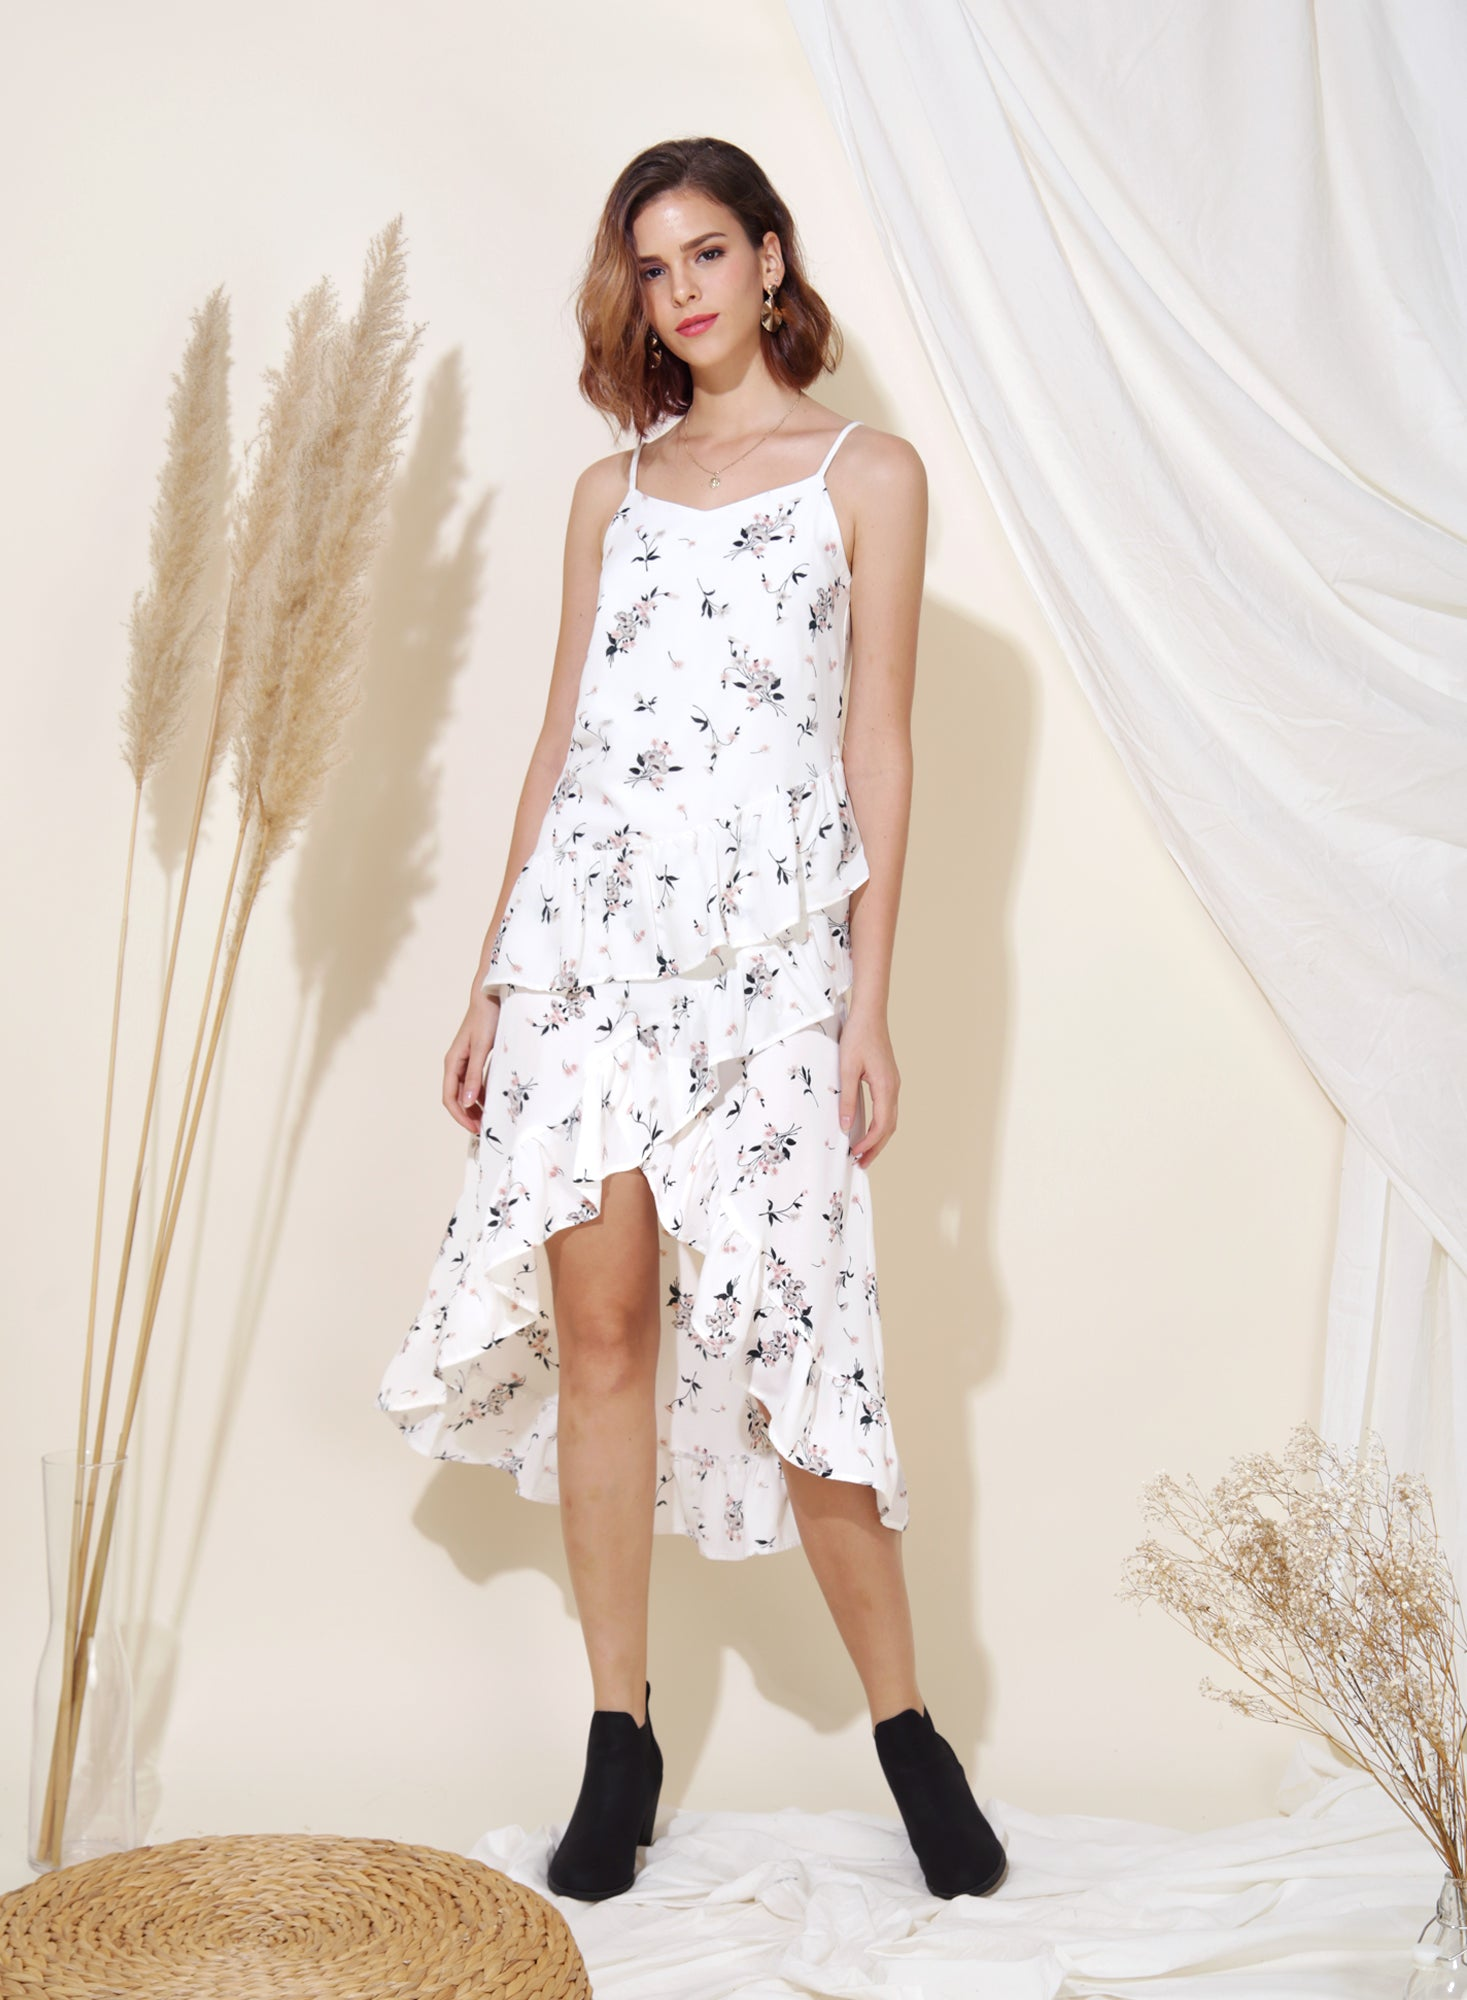 Cosmic Ruffle Tiered Hem Dress (Floral) at $ 44.50 only sold at And Well Dressed Online Fashion Store Singapore